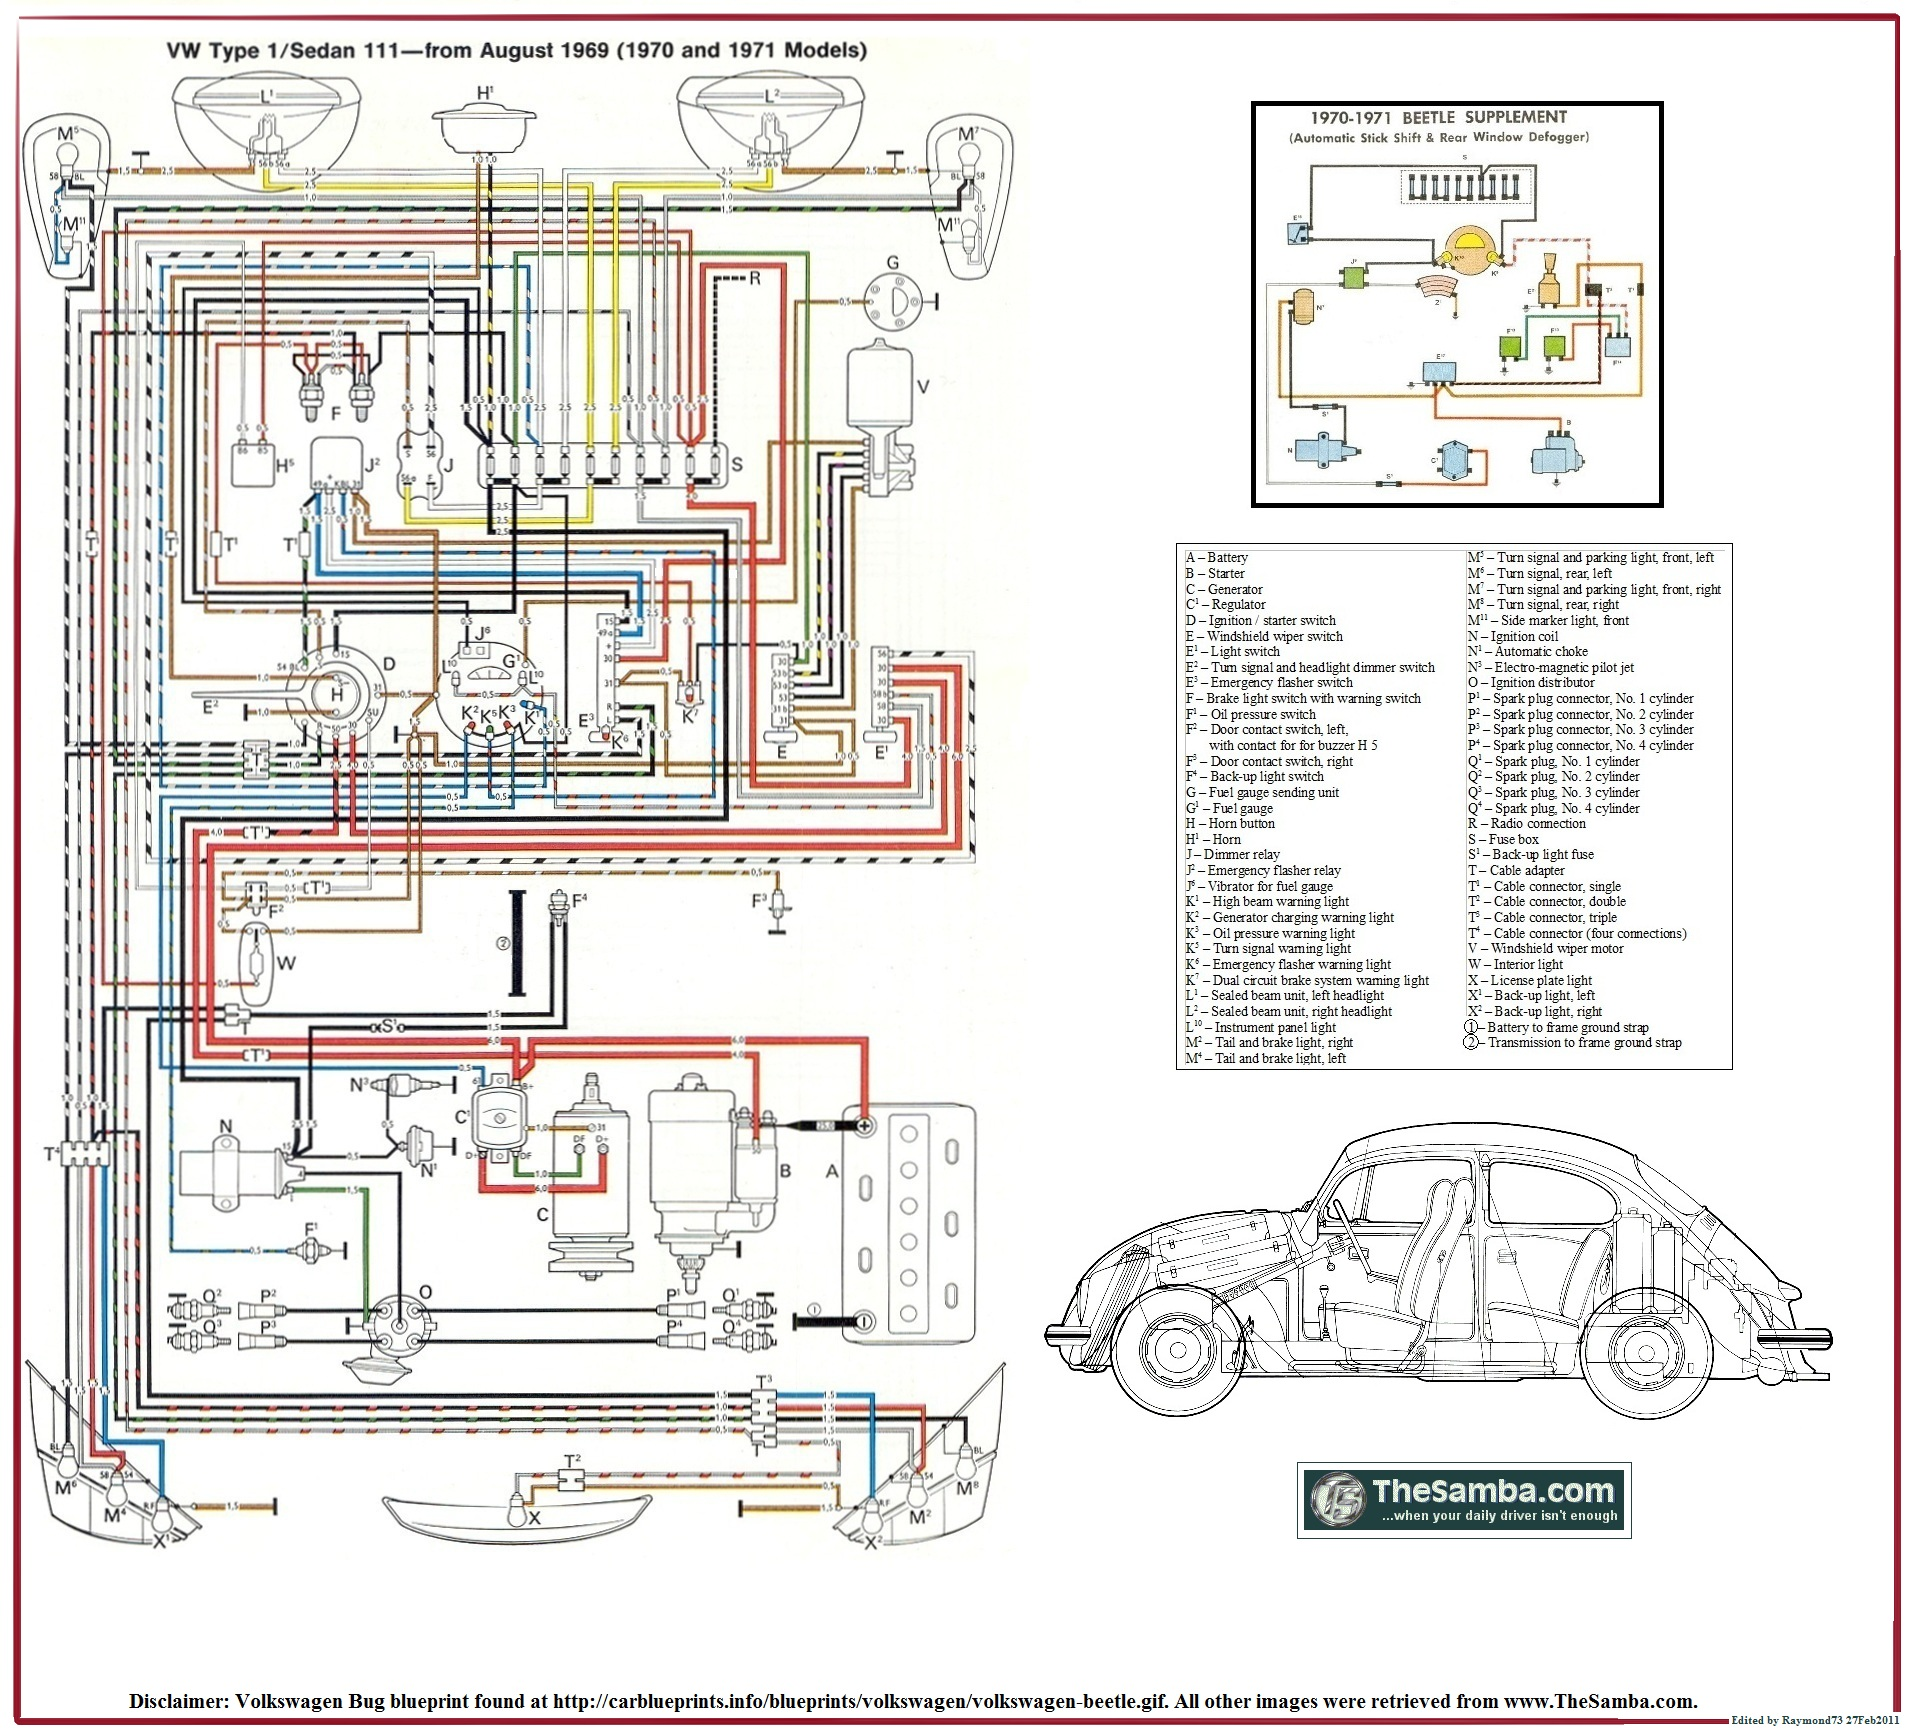 1970_VW_Type_1_Poster thesamba com beetle late model super 1968 up view topic vw bug wiring diagram at mifinder.co